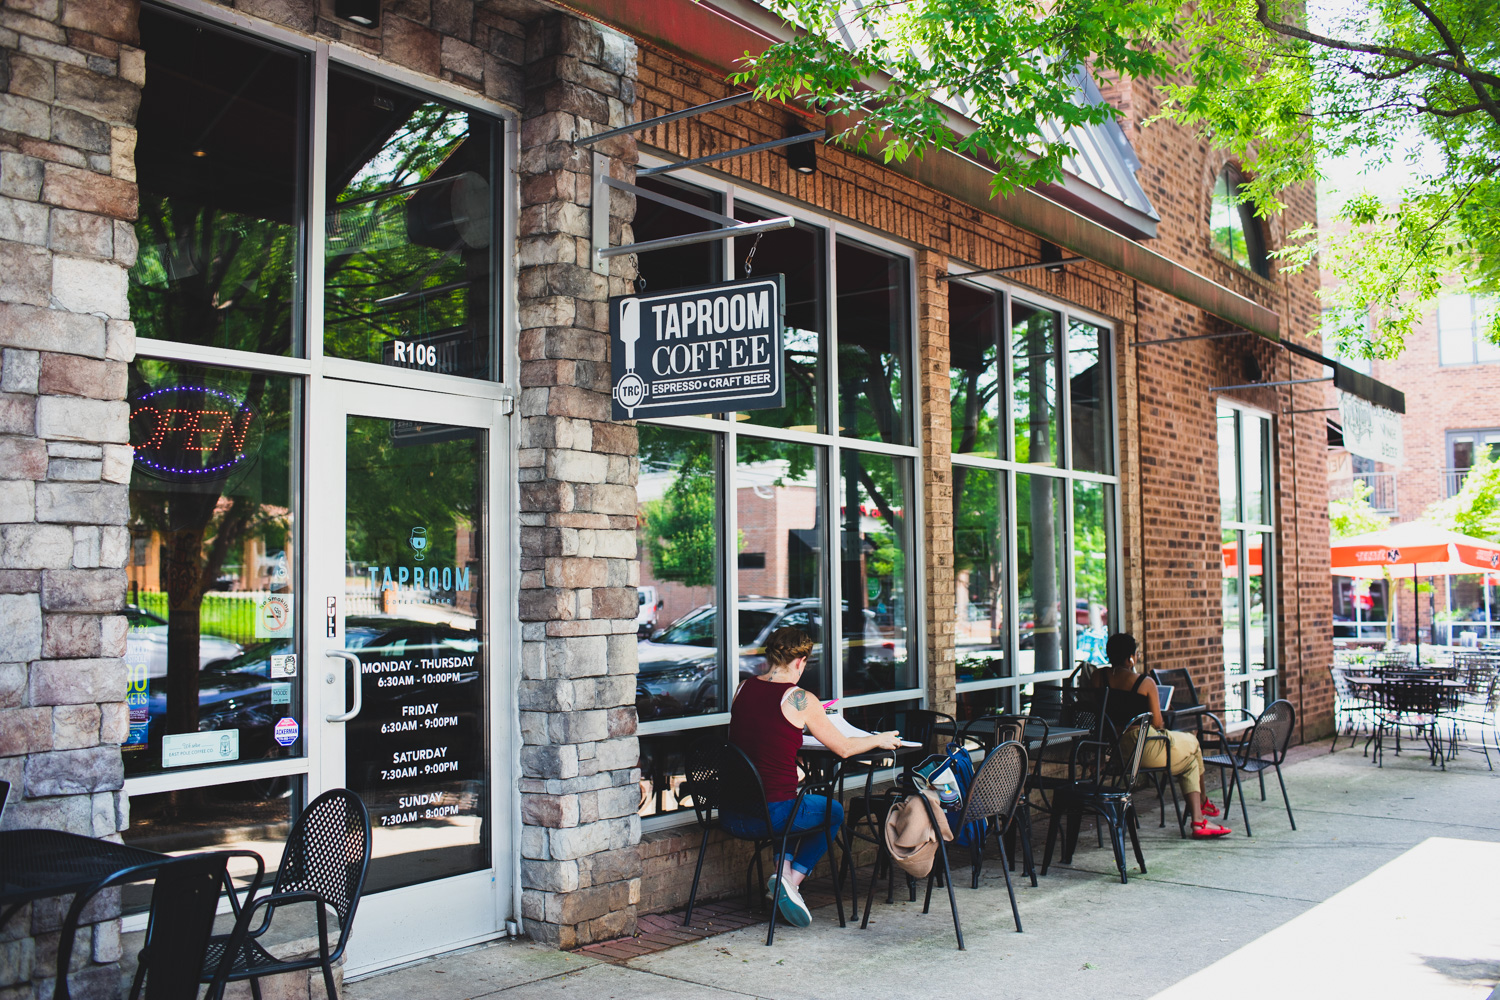 The exterior of Taproom Coffee & Beer.